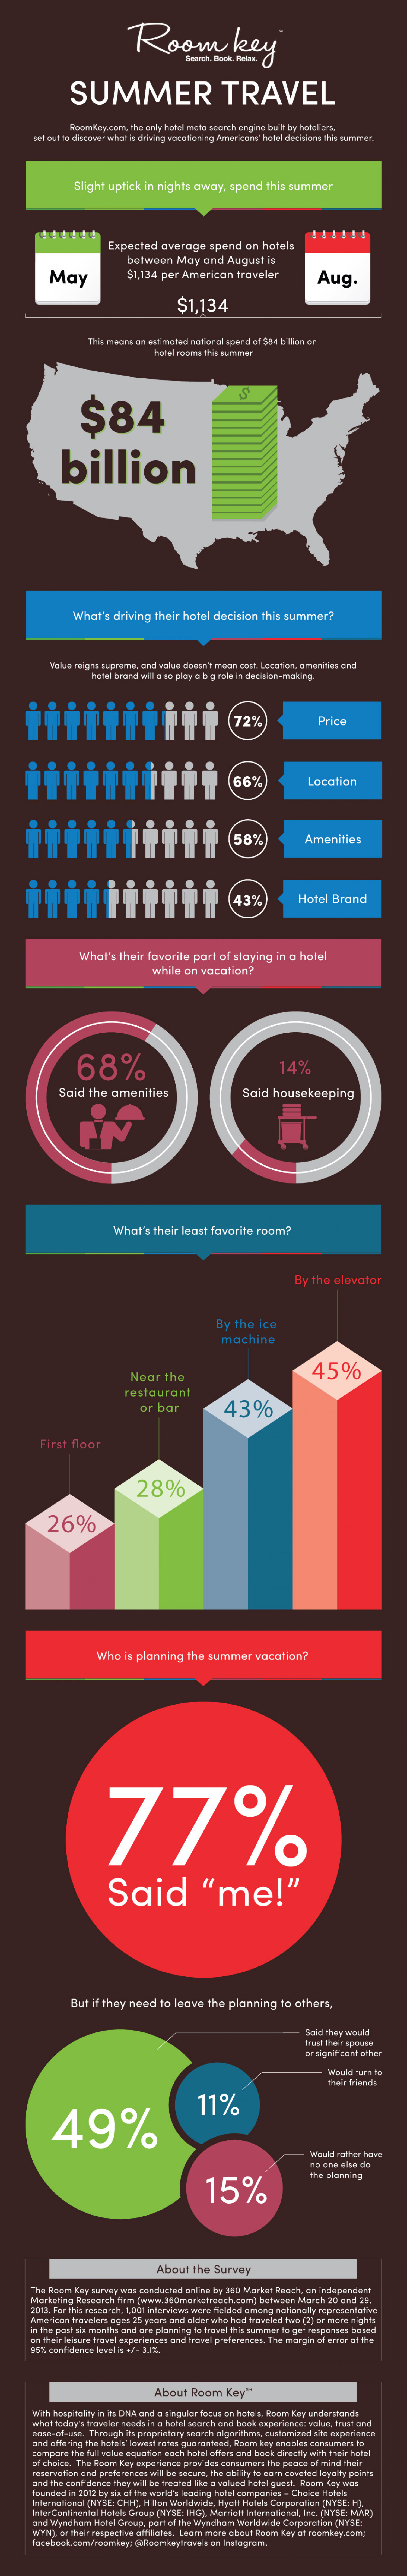 Room Key Reveals Summer Travelers' Hotel Preferences  Infographic